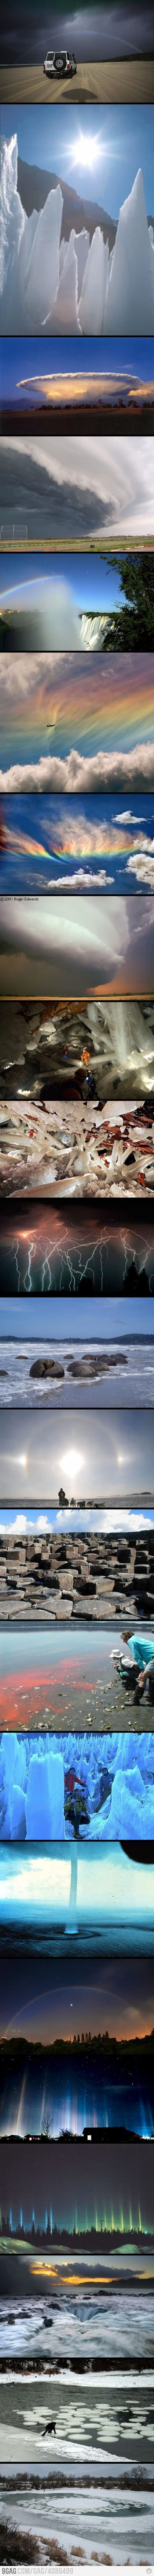 World's Most Awesome Natural Phenomena